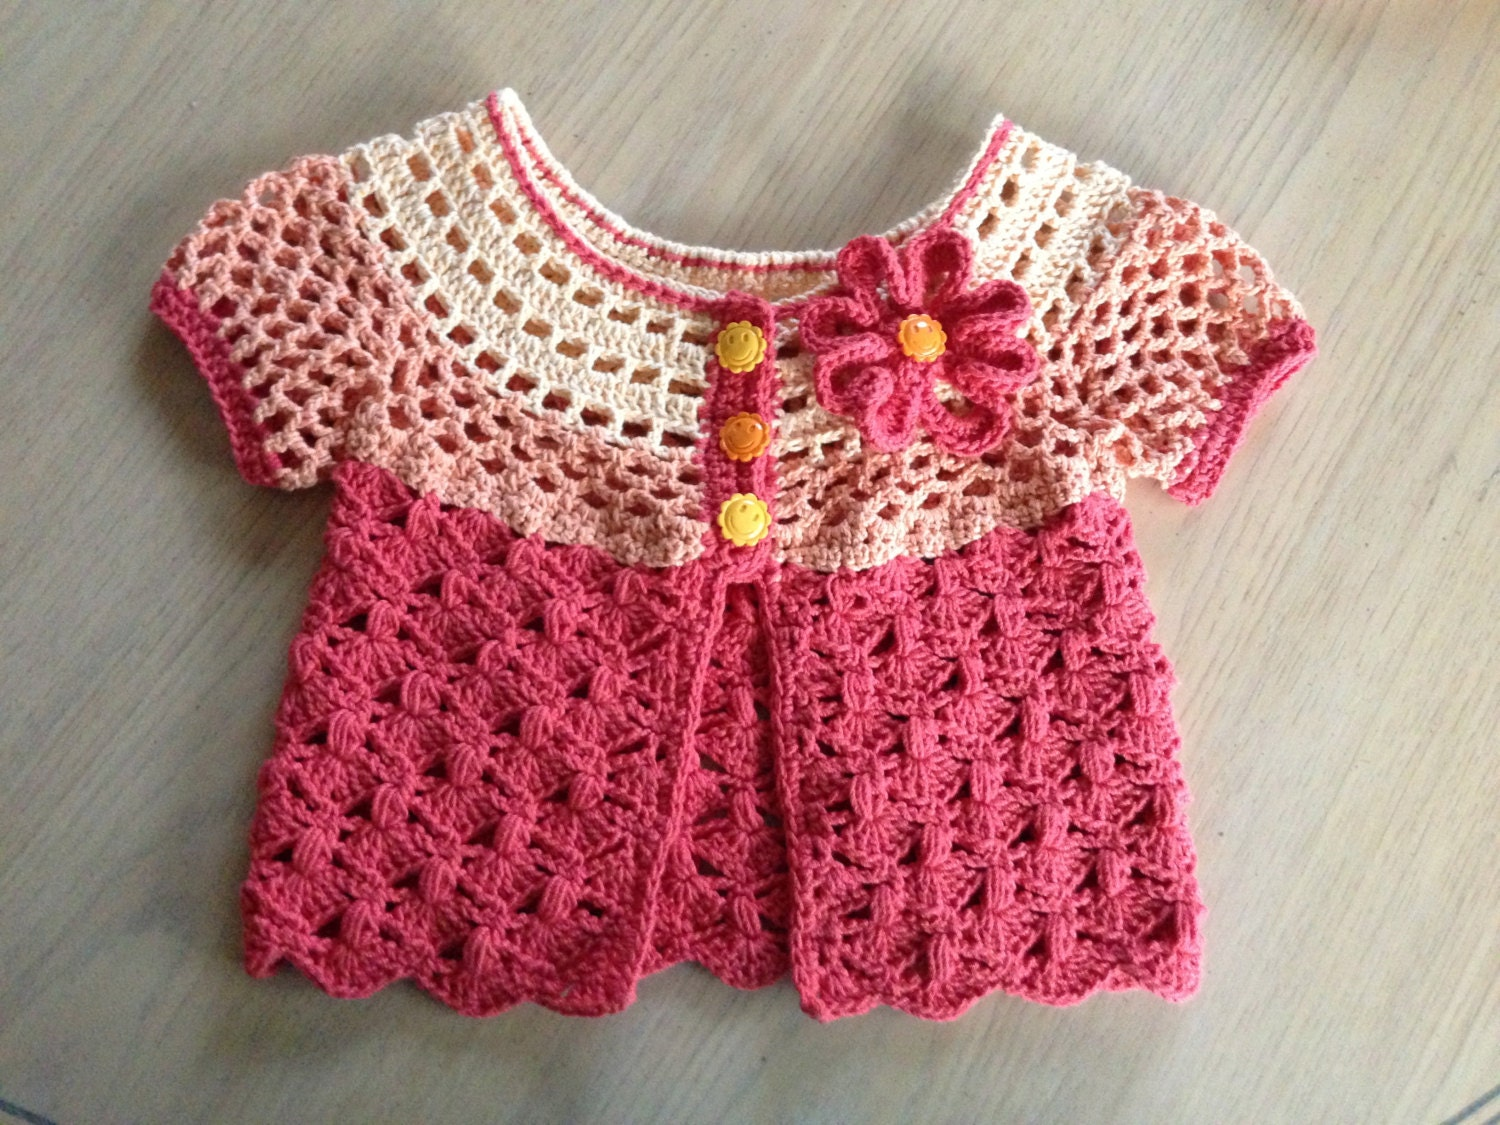 Crochet Baby Sweater : Easy Crochet Baby Sweater Pattern Crochet Free Patterns Dog Breeds ...